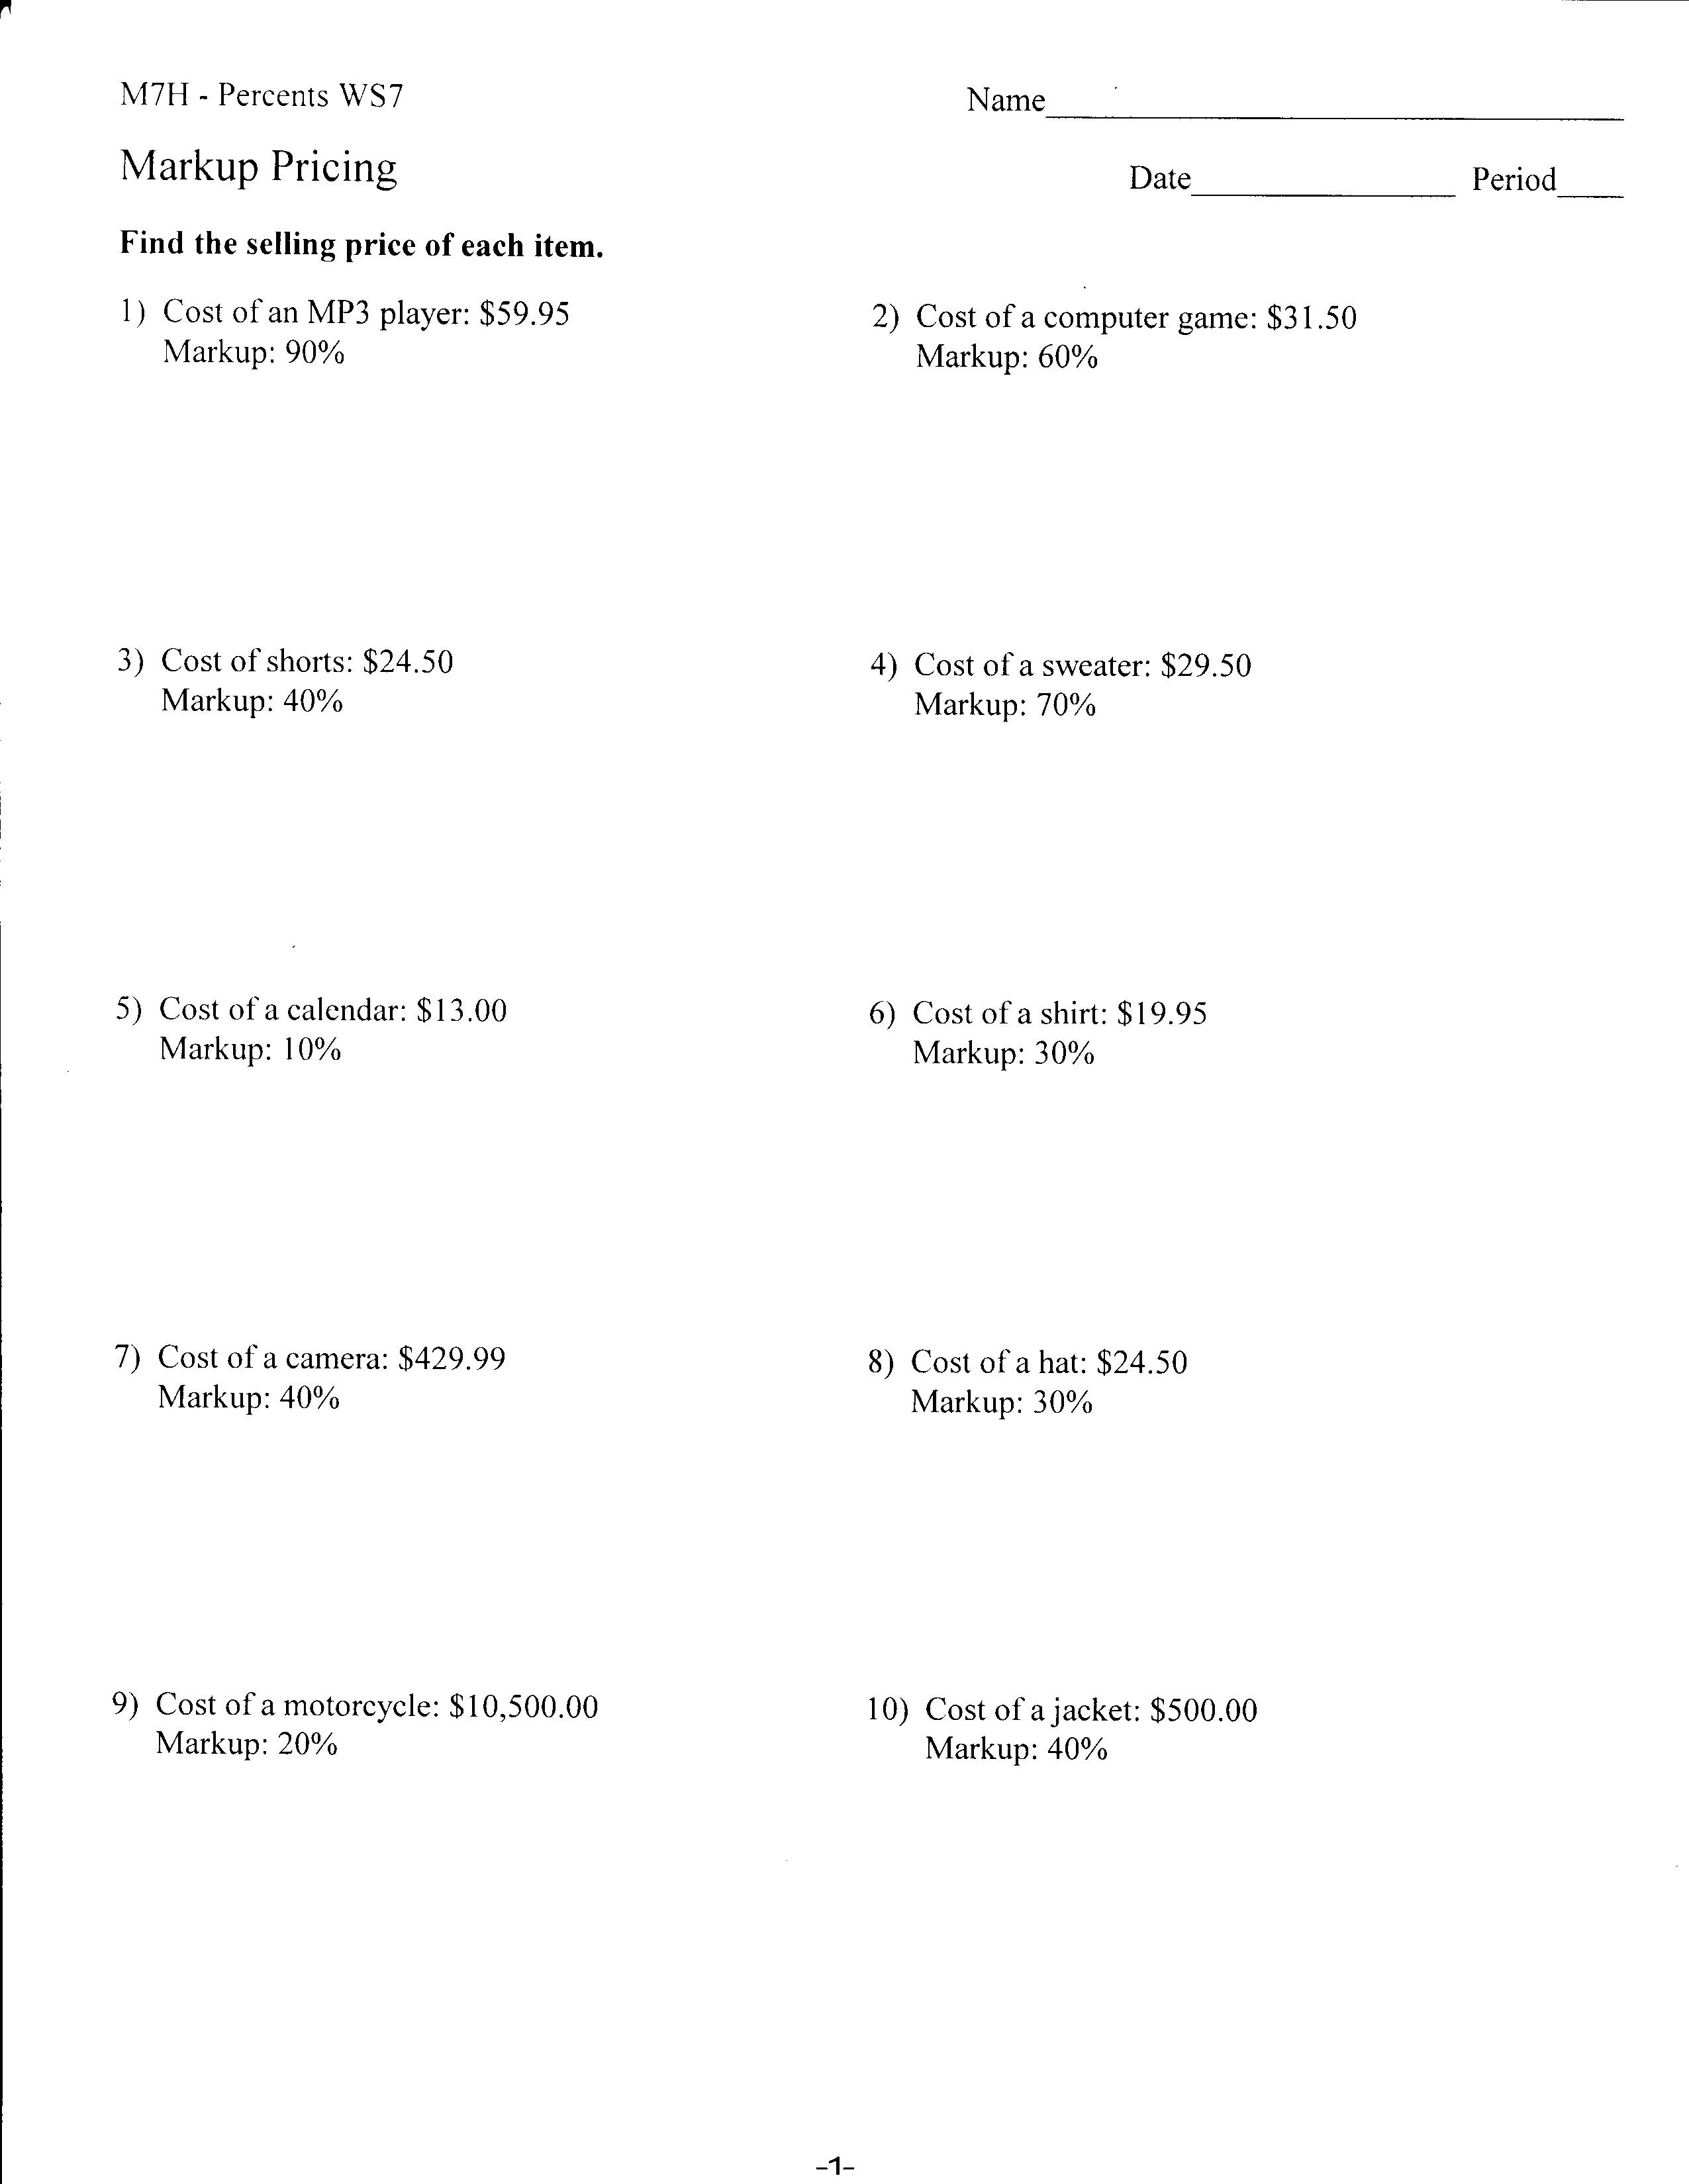 Worksheets  Mrs Lay's Webpage 201112 In Markup And Discount Worksheet